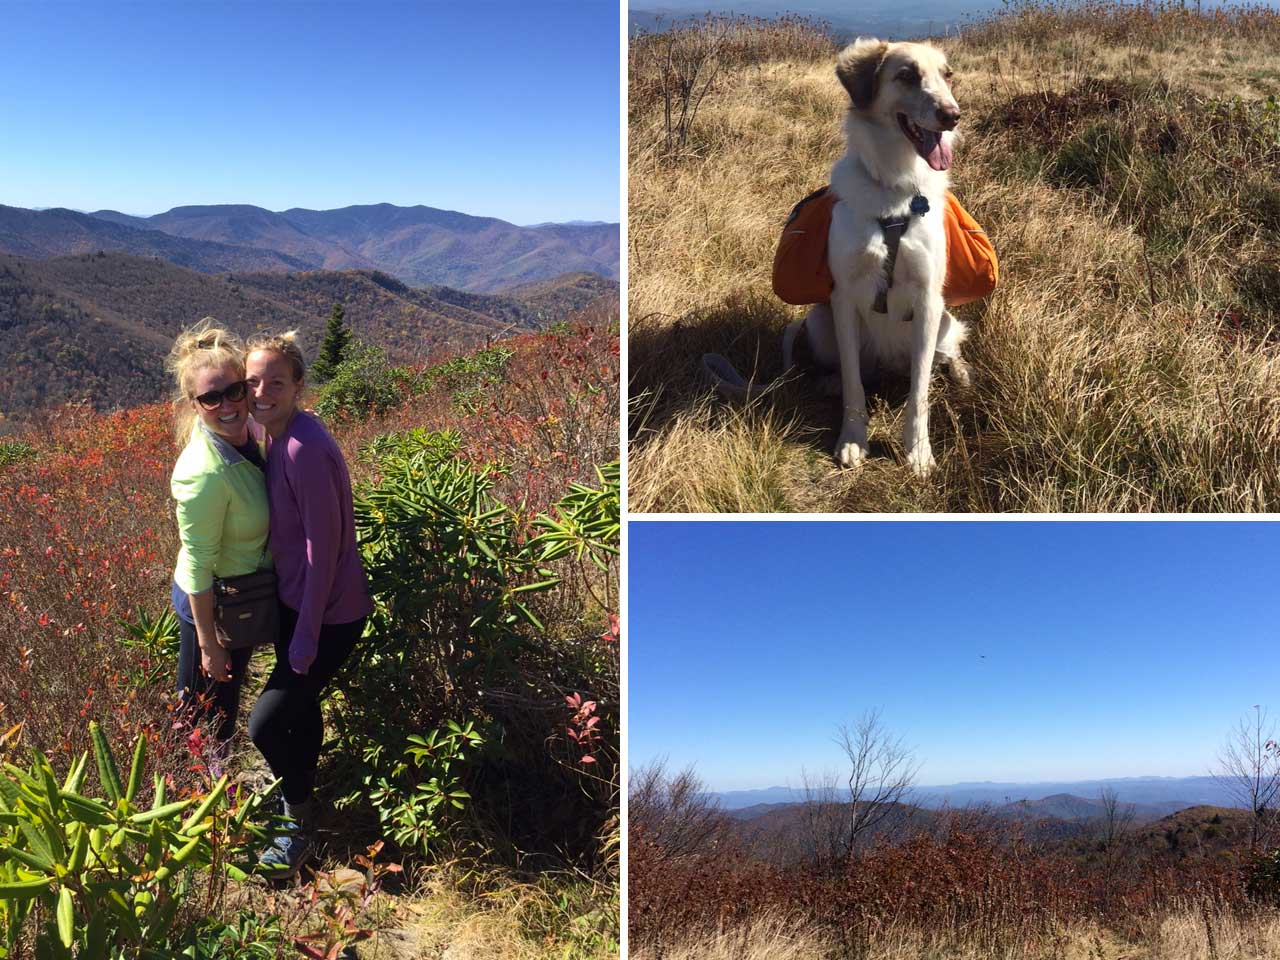 5 Hikes in North Carolina - Black Balsam Knob in Pisgah National Forest